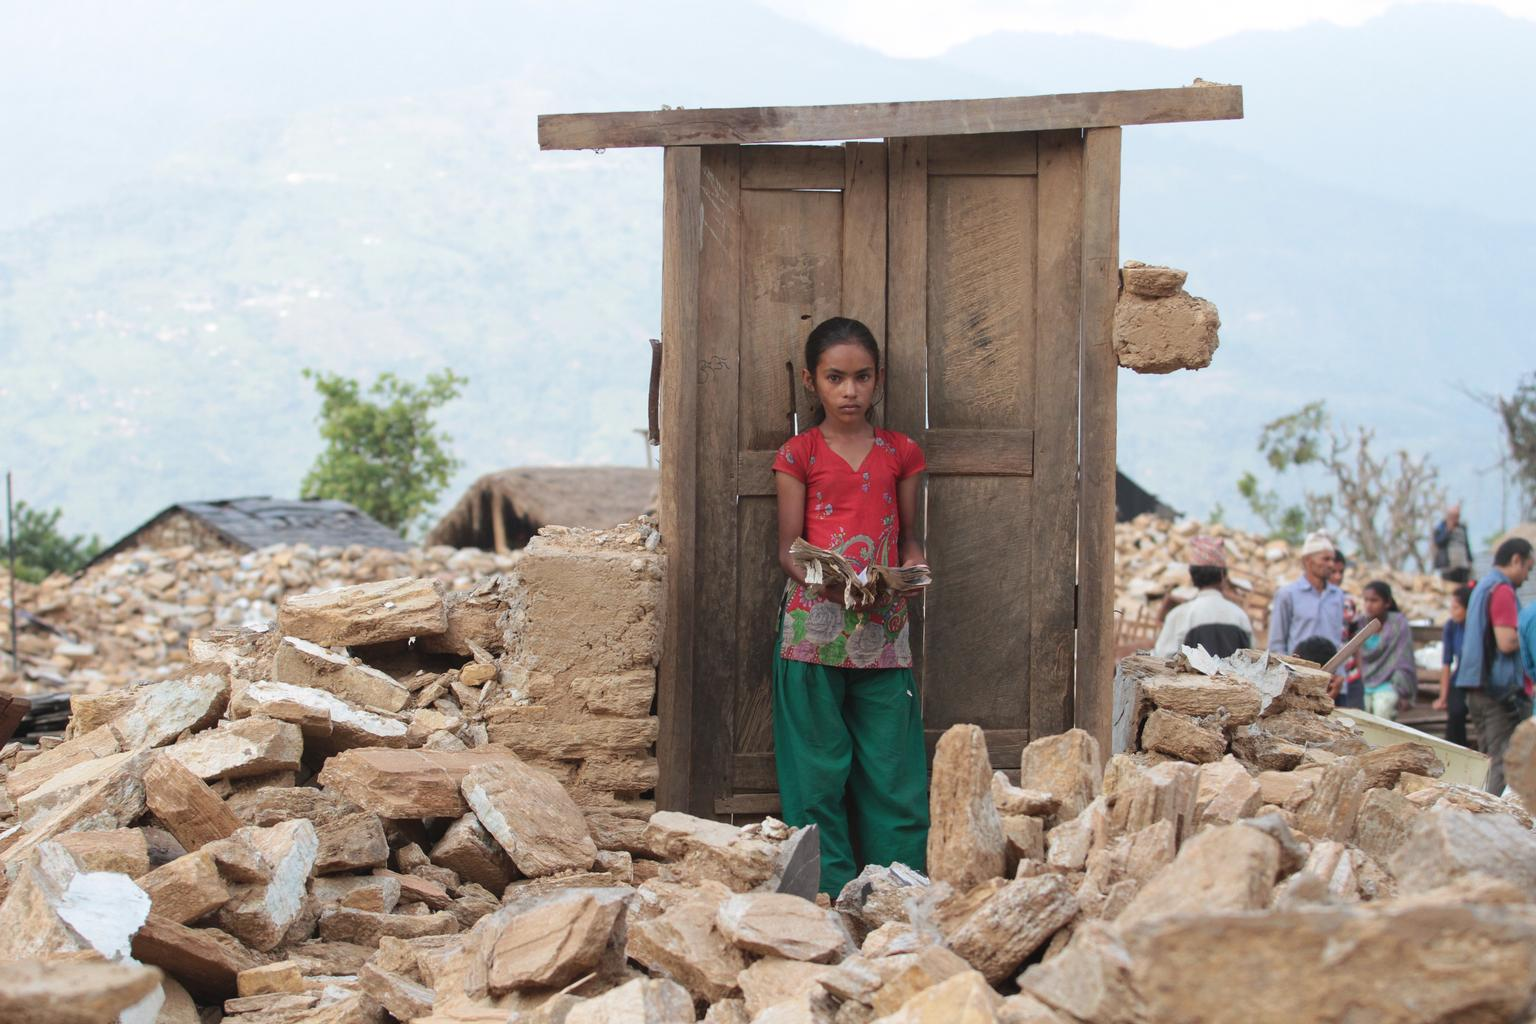 Pabitrya (13) holds a book that she found among the rubble of a destroyed school in one of the severely earthquake-affected districts in Nepal.